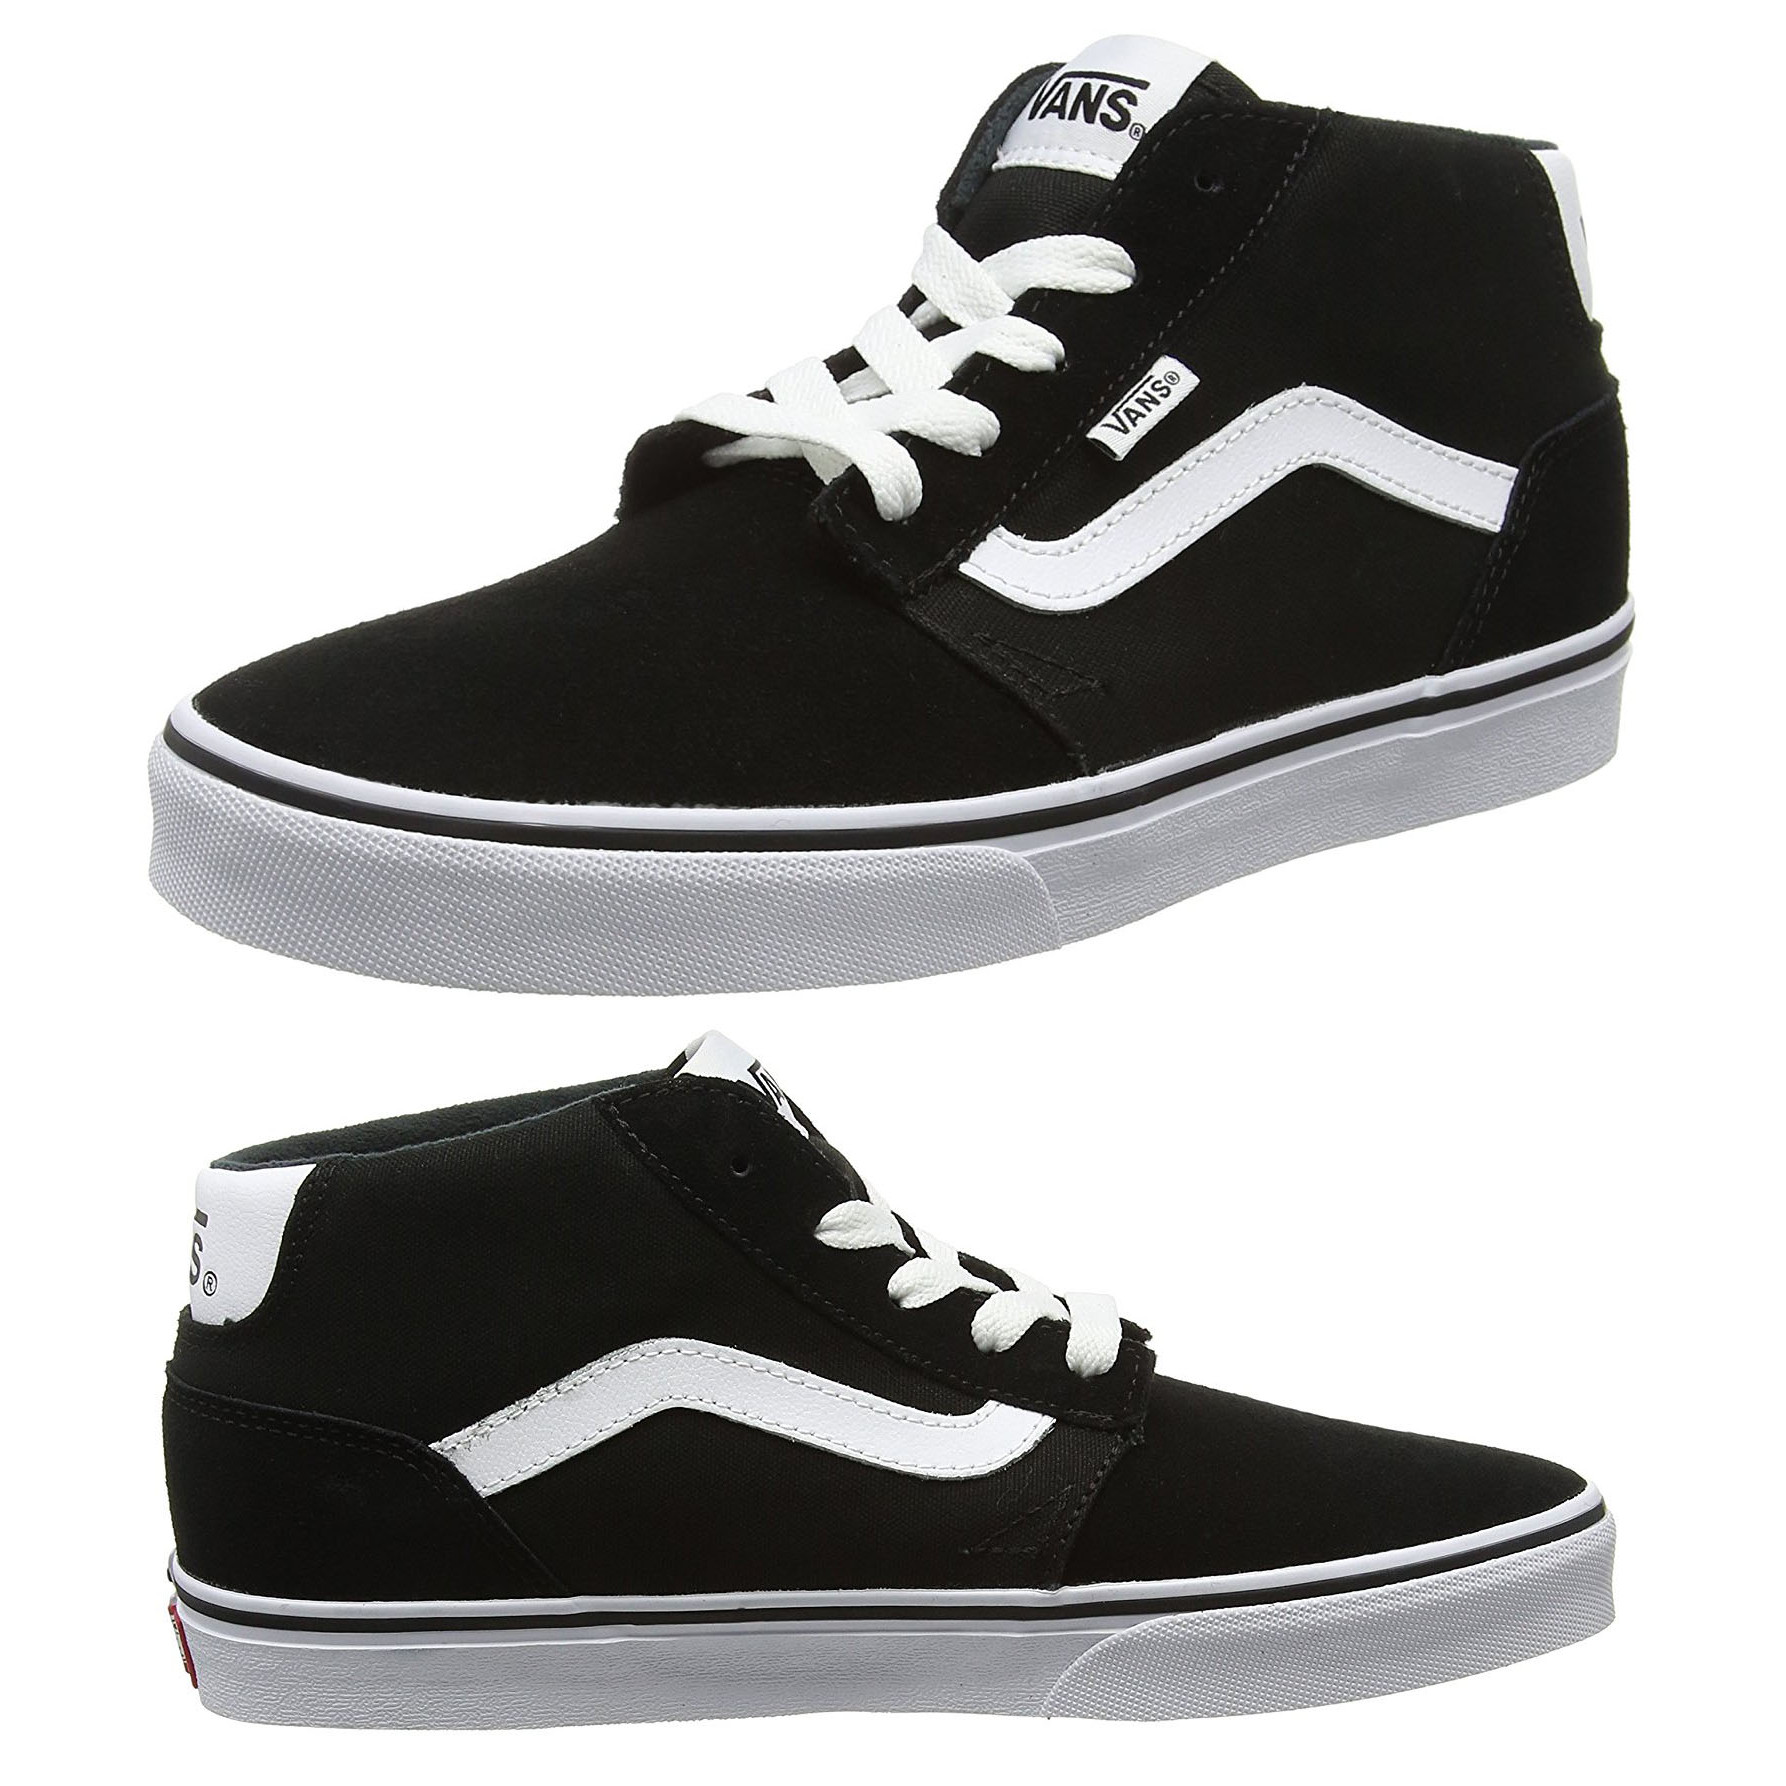 72d2f94bb4f2 Vans Men s Chapman Mid Stripe Suede Canvas Shoes Trainers Black White